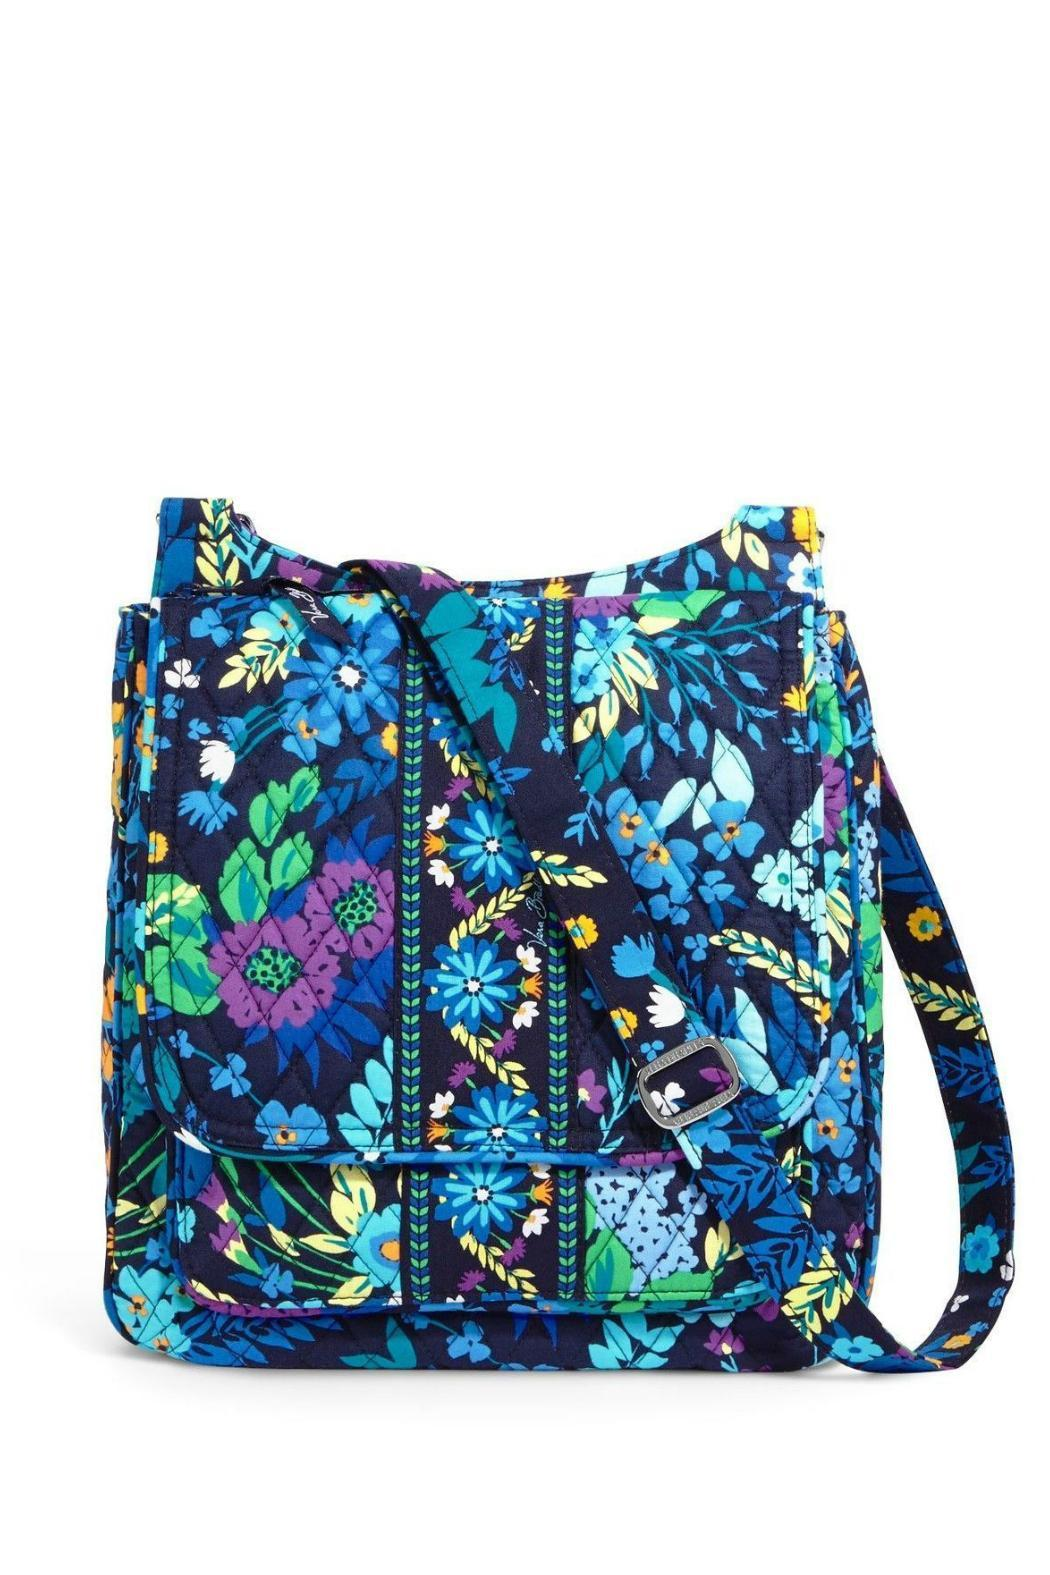 c603746c72a1 Vera Bradley Midnight Blue Mailbag from Kentucky by Mimi s Gift ...